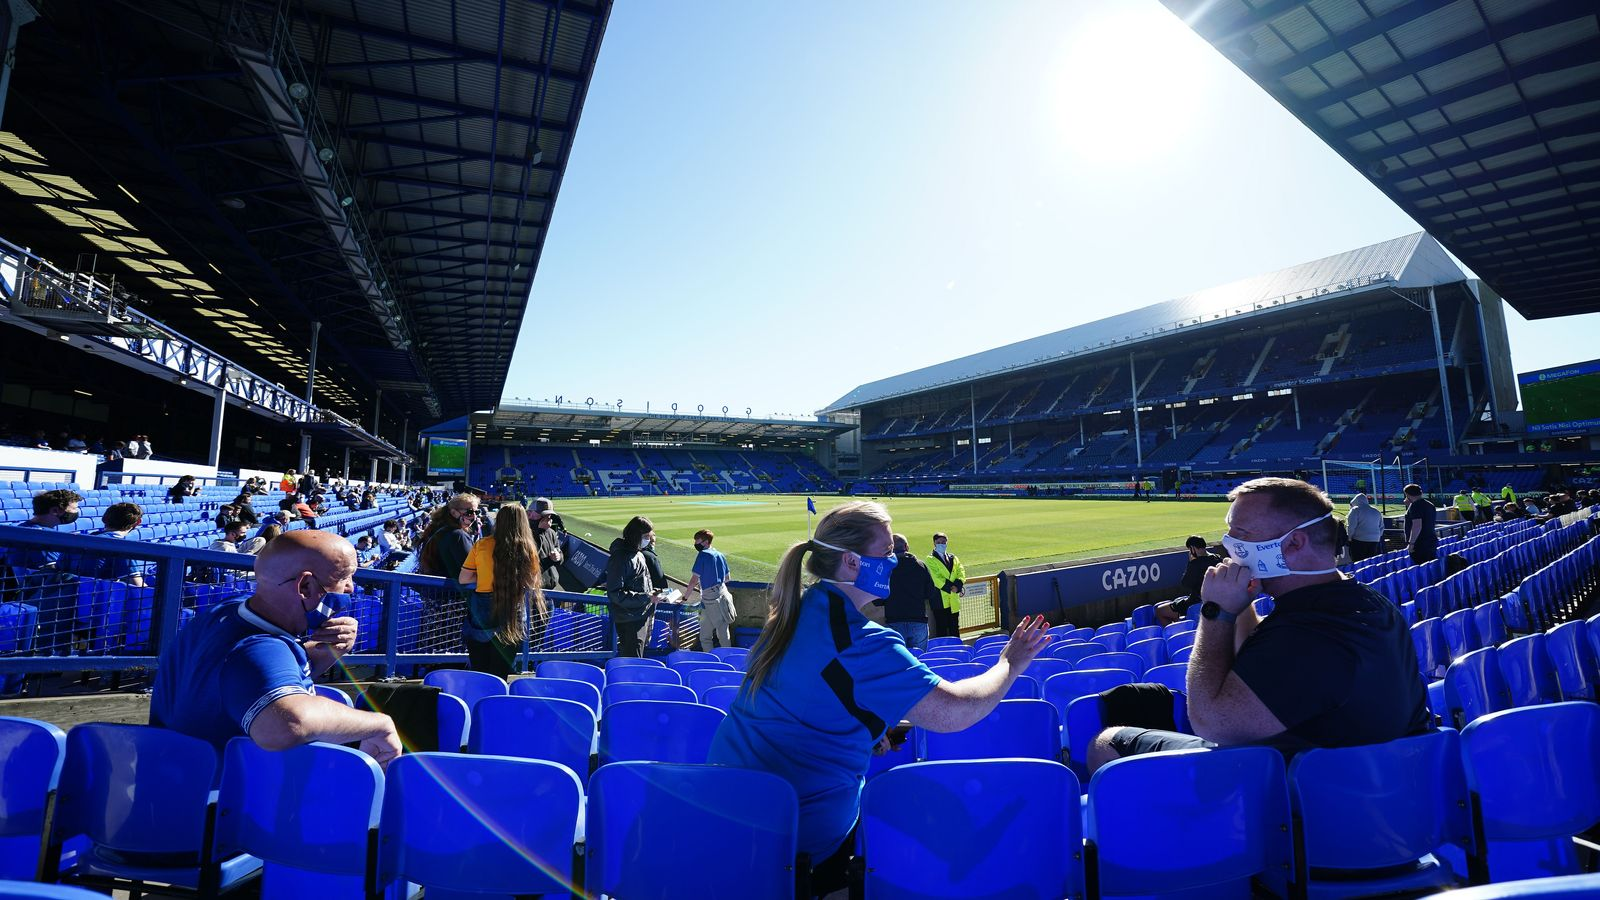 """""""It has been a year like no other and a season lost to fans. A season in which the joy and camaraderie of matchday has been replaced by silence and empty seats. The three games in the season where we were able to welcome a limited number of supporters into Goodison Park were very special – and somewhat emotional. Like all Evertonians, I am counting down the days for the return of fans in substantial numbers."""